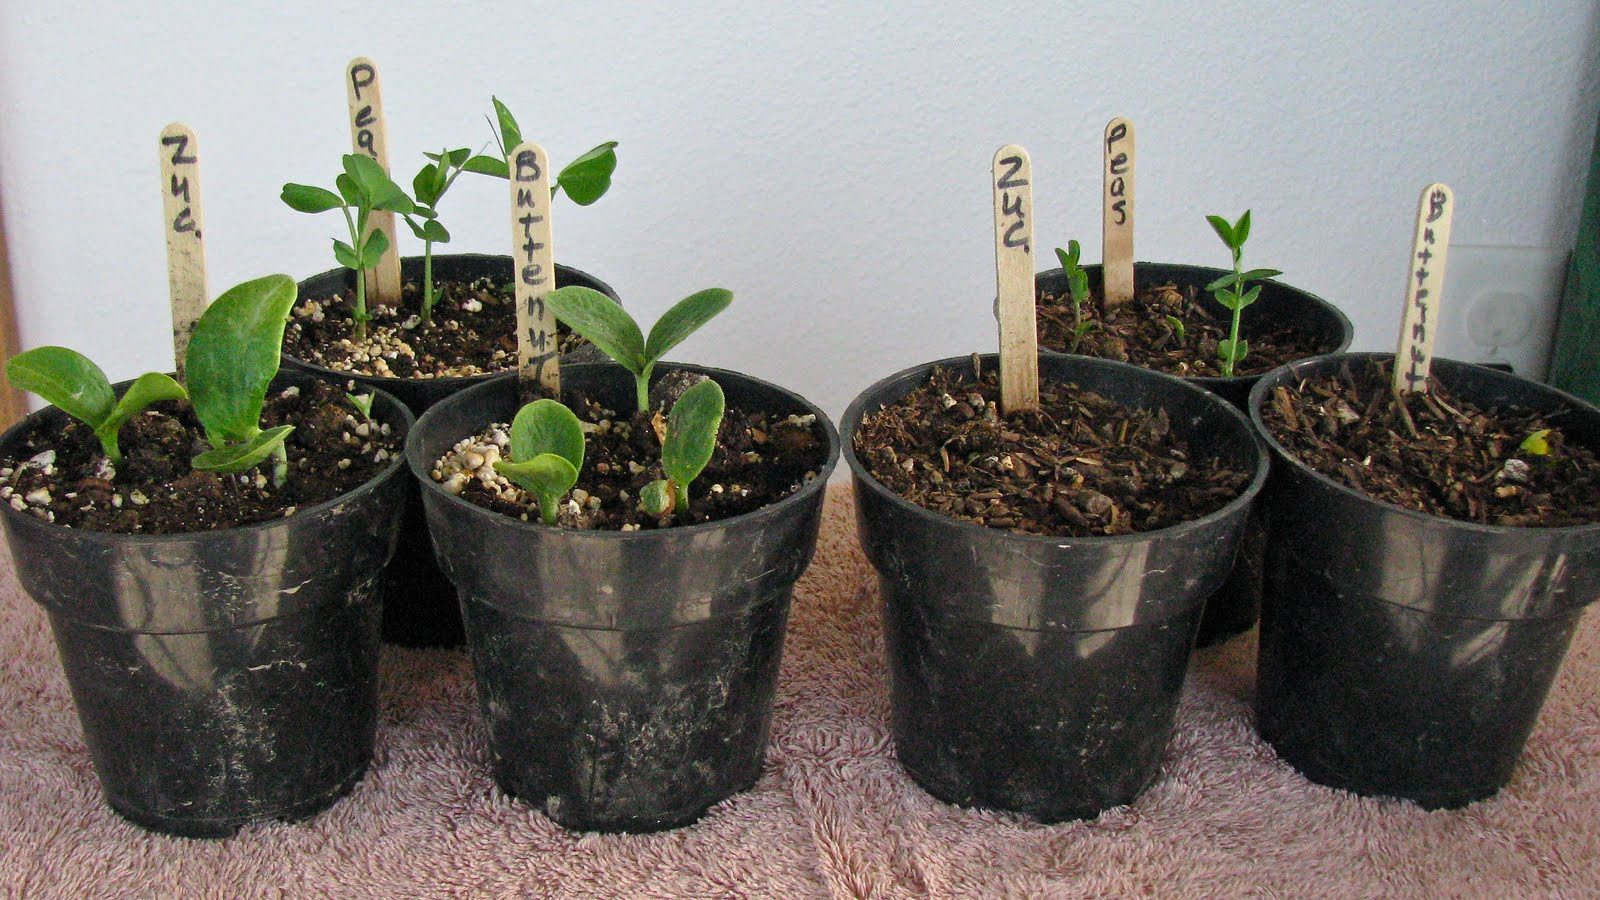 ... Than 10 Parts Soil To 1 Part Soil Less Mix For Any Vegetable Garden.  See Photo Below For Results Comparing A Soil Mix(left )from A Soil Less Mix (right).